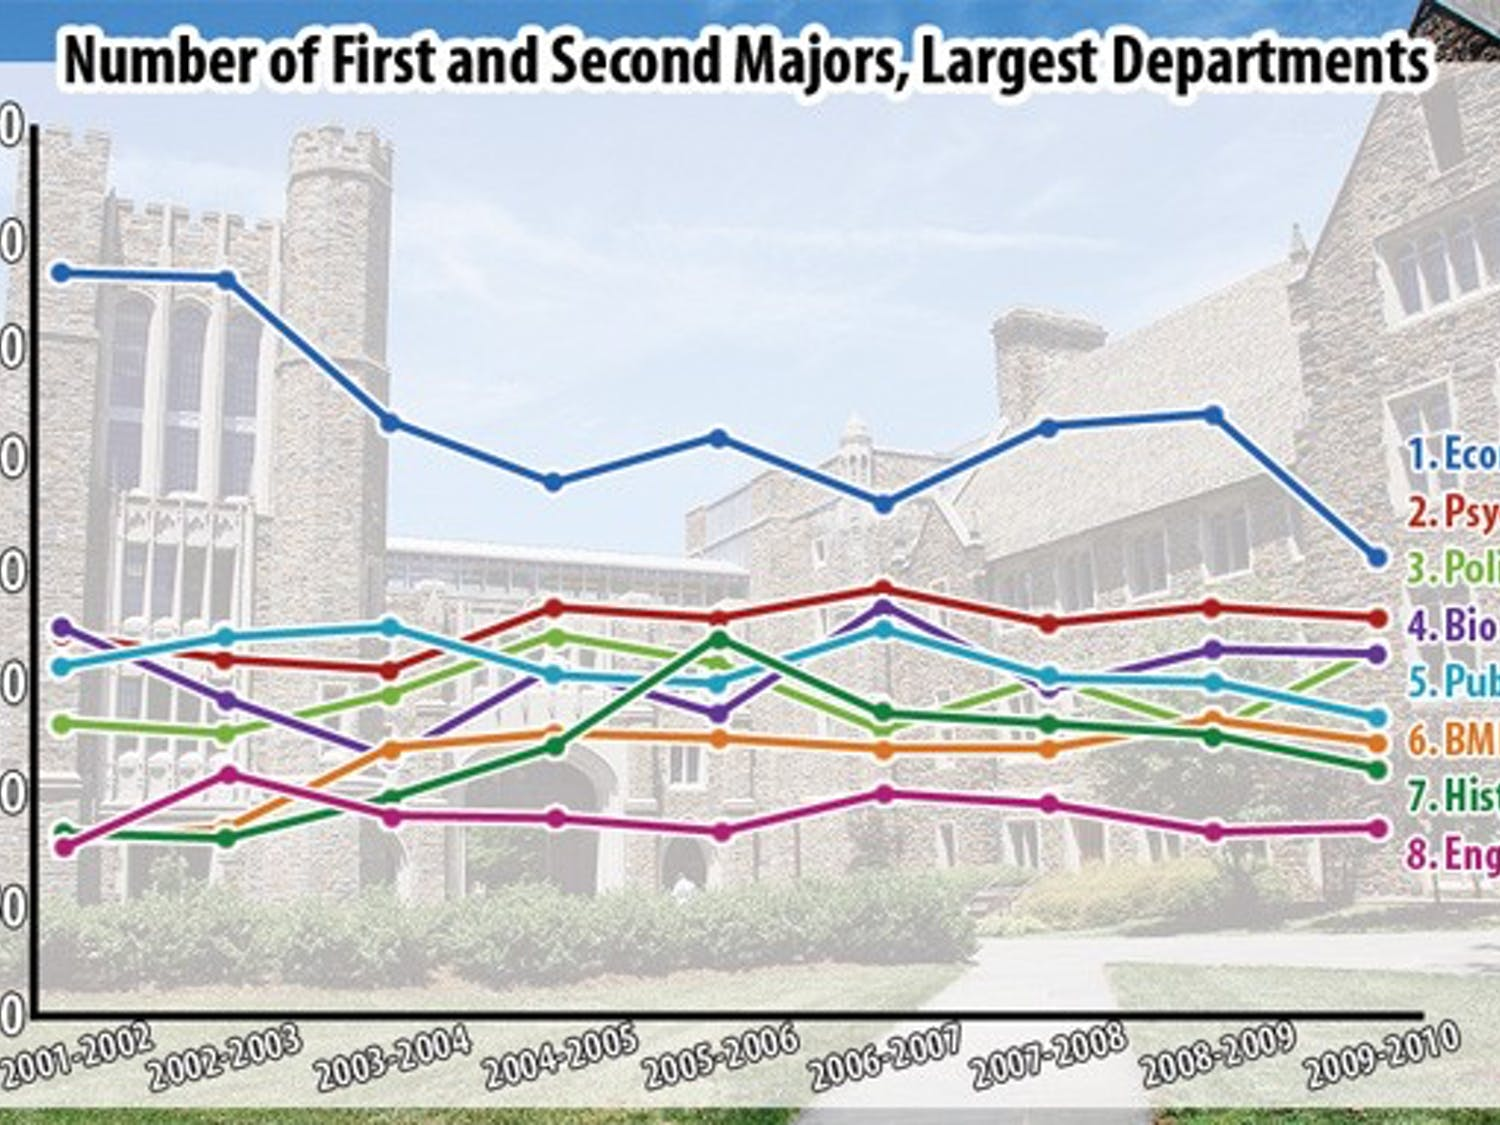 Economics is still the most popular major at Duke, despite a decline in the number of students pursuing the field. This past year, 207 students graduated from the economics department, down from 335 students in 2001-2002.